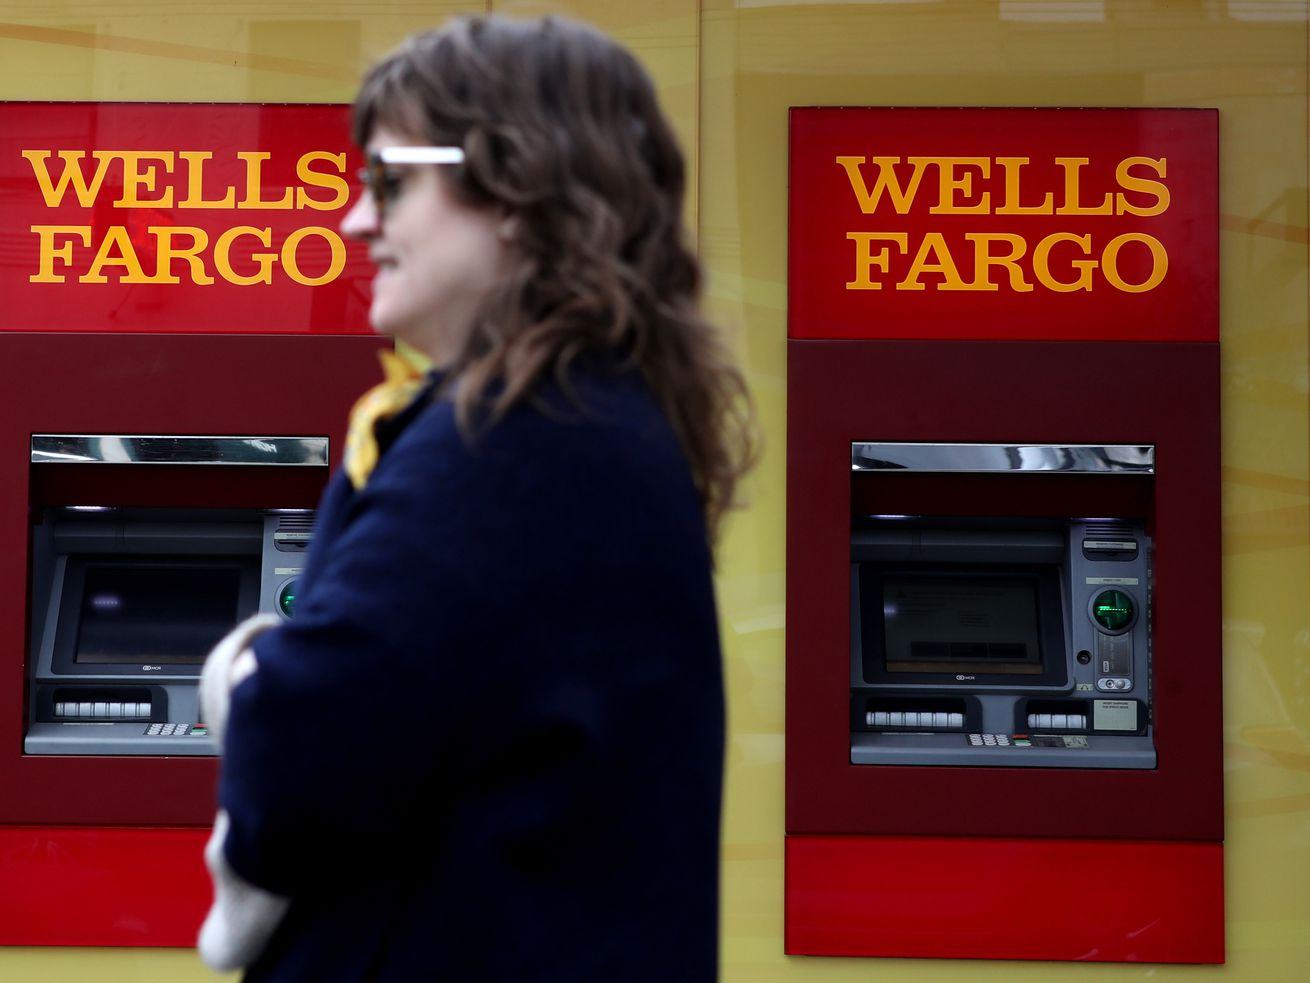 Wells Fargo customers have had trouble accessing ATMs and online services as a result of a power outage.